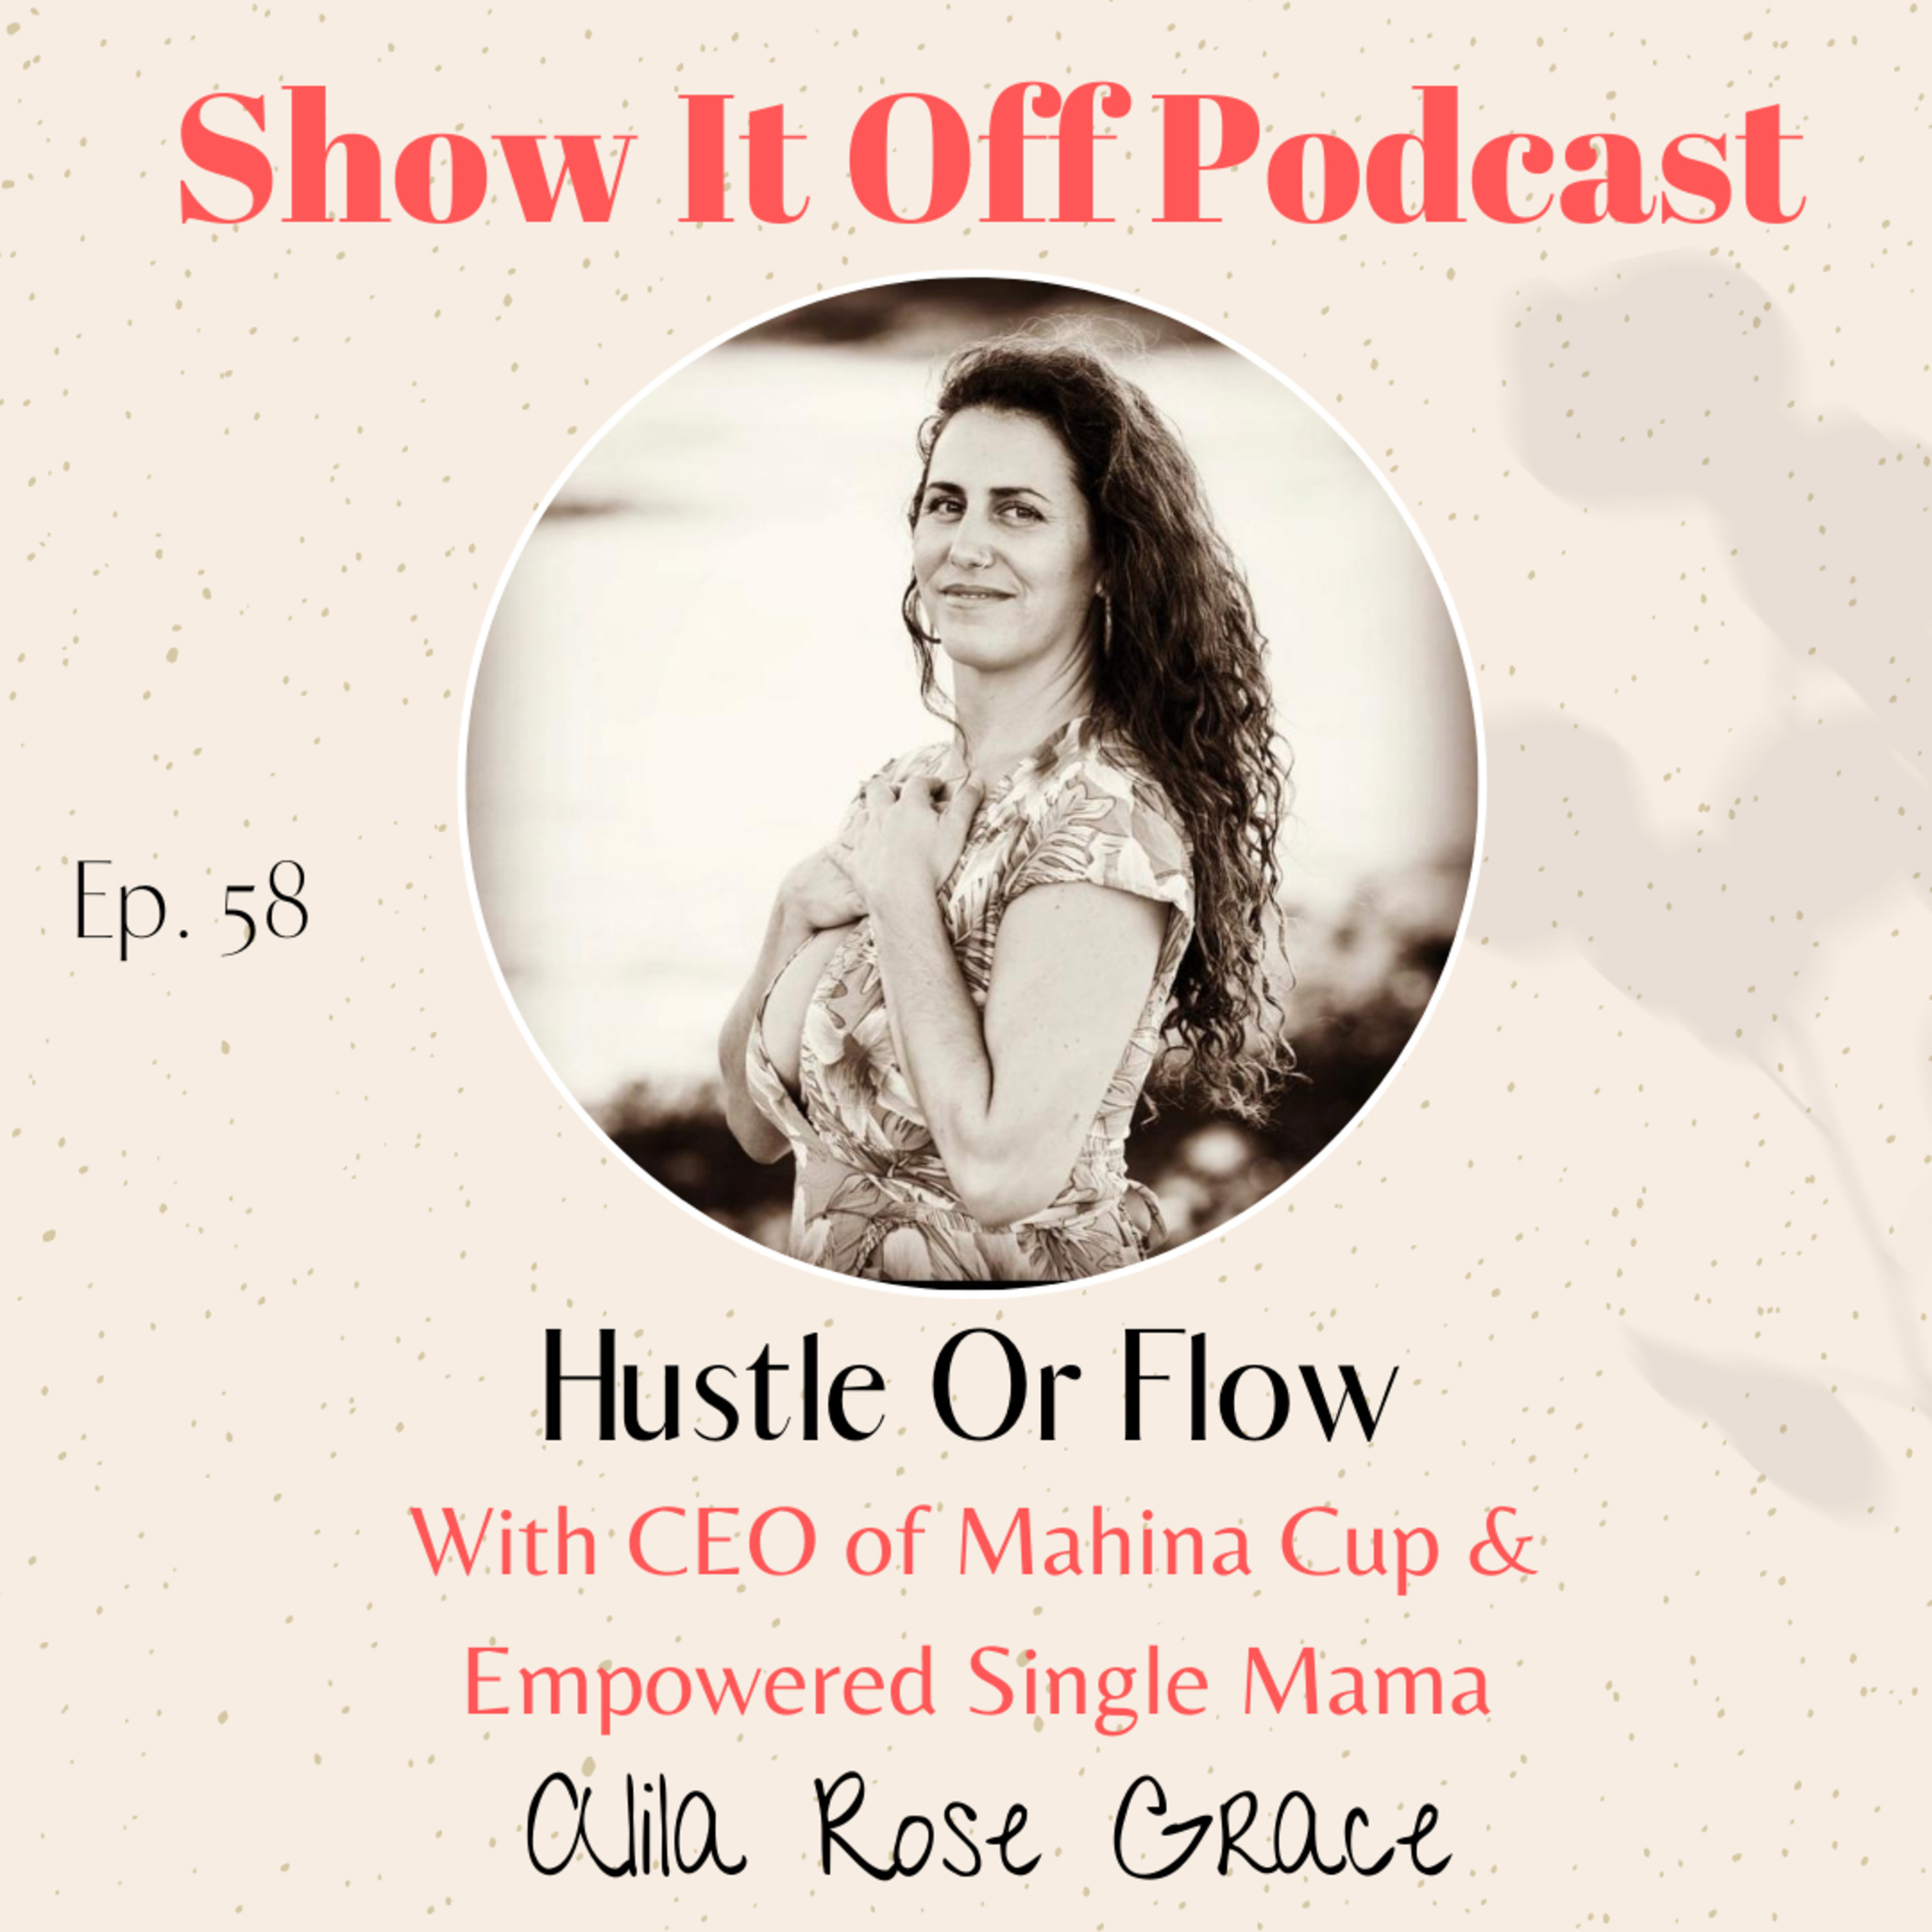 Hustle OR Flow? With CEO of Mahina Cup and Empowered Single Mama, Alila Rose Grace